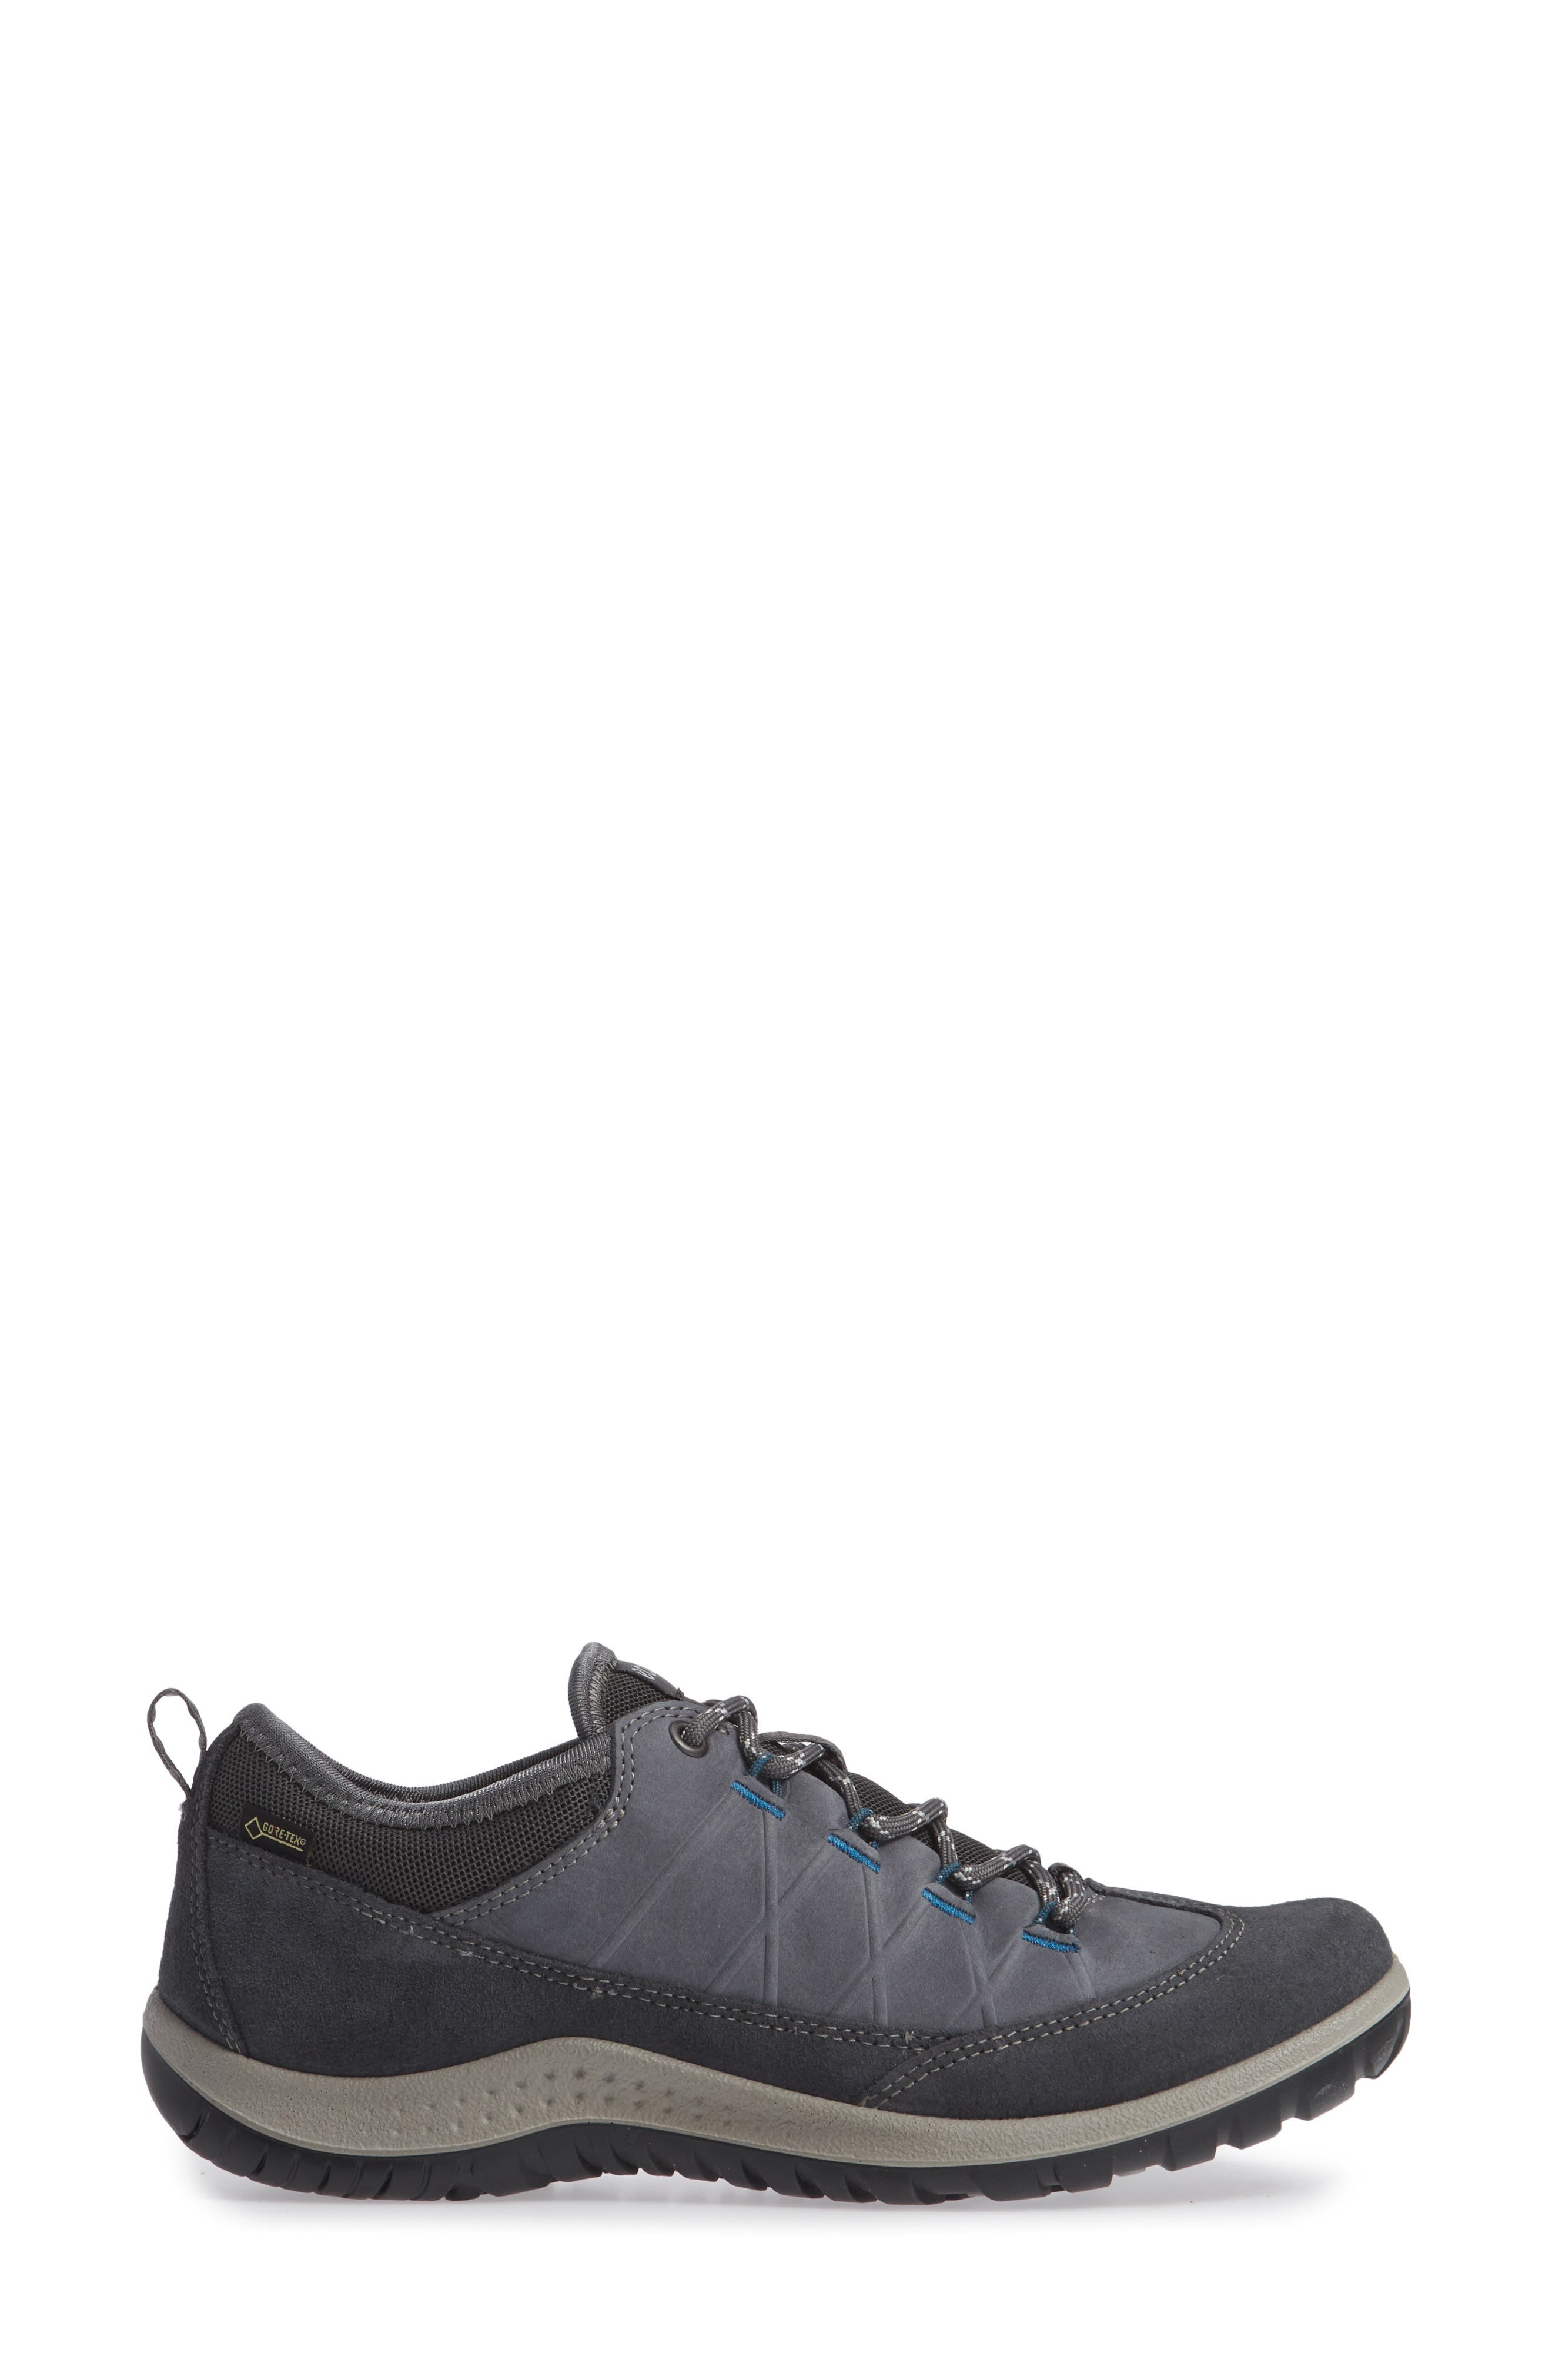 'Aspina GTX' Waterproof Sneaker,                             Alternate thumbnail 3, color,                             057